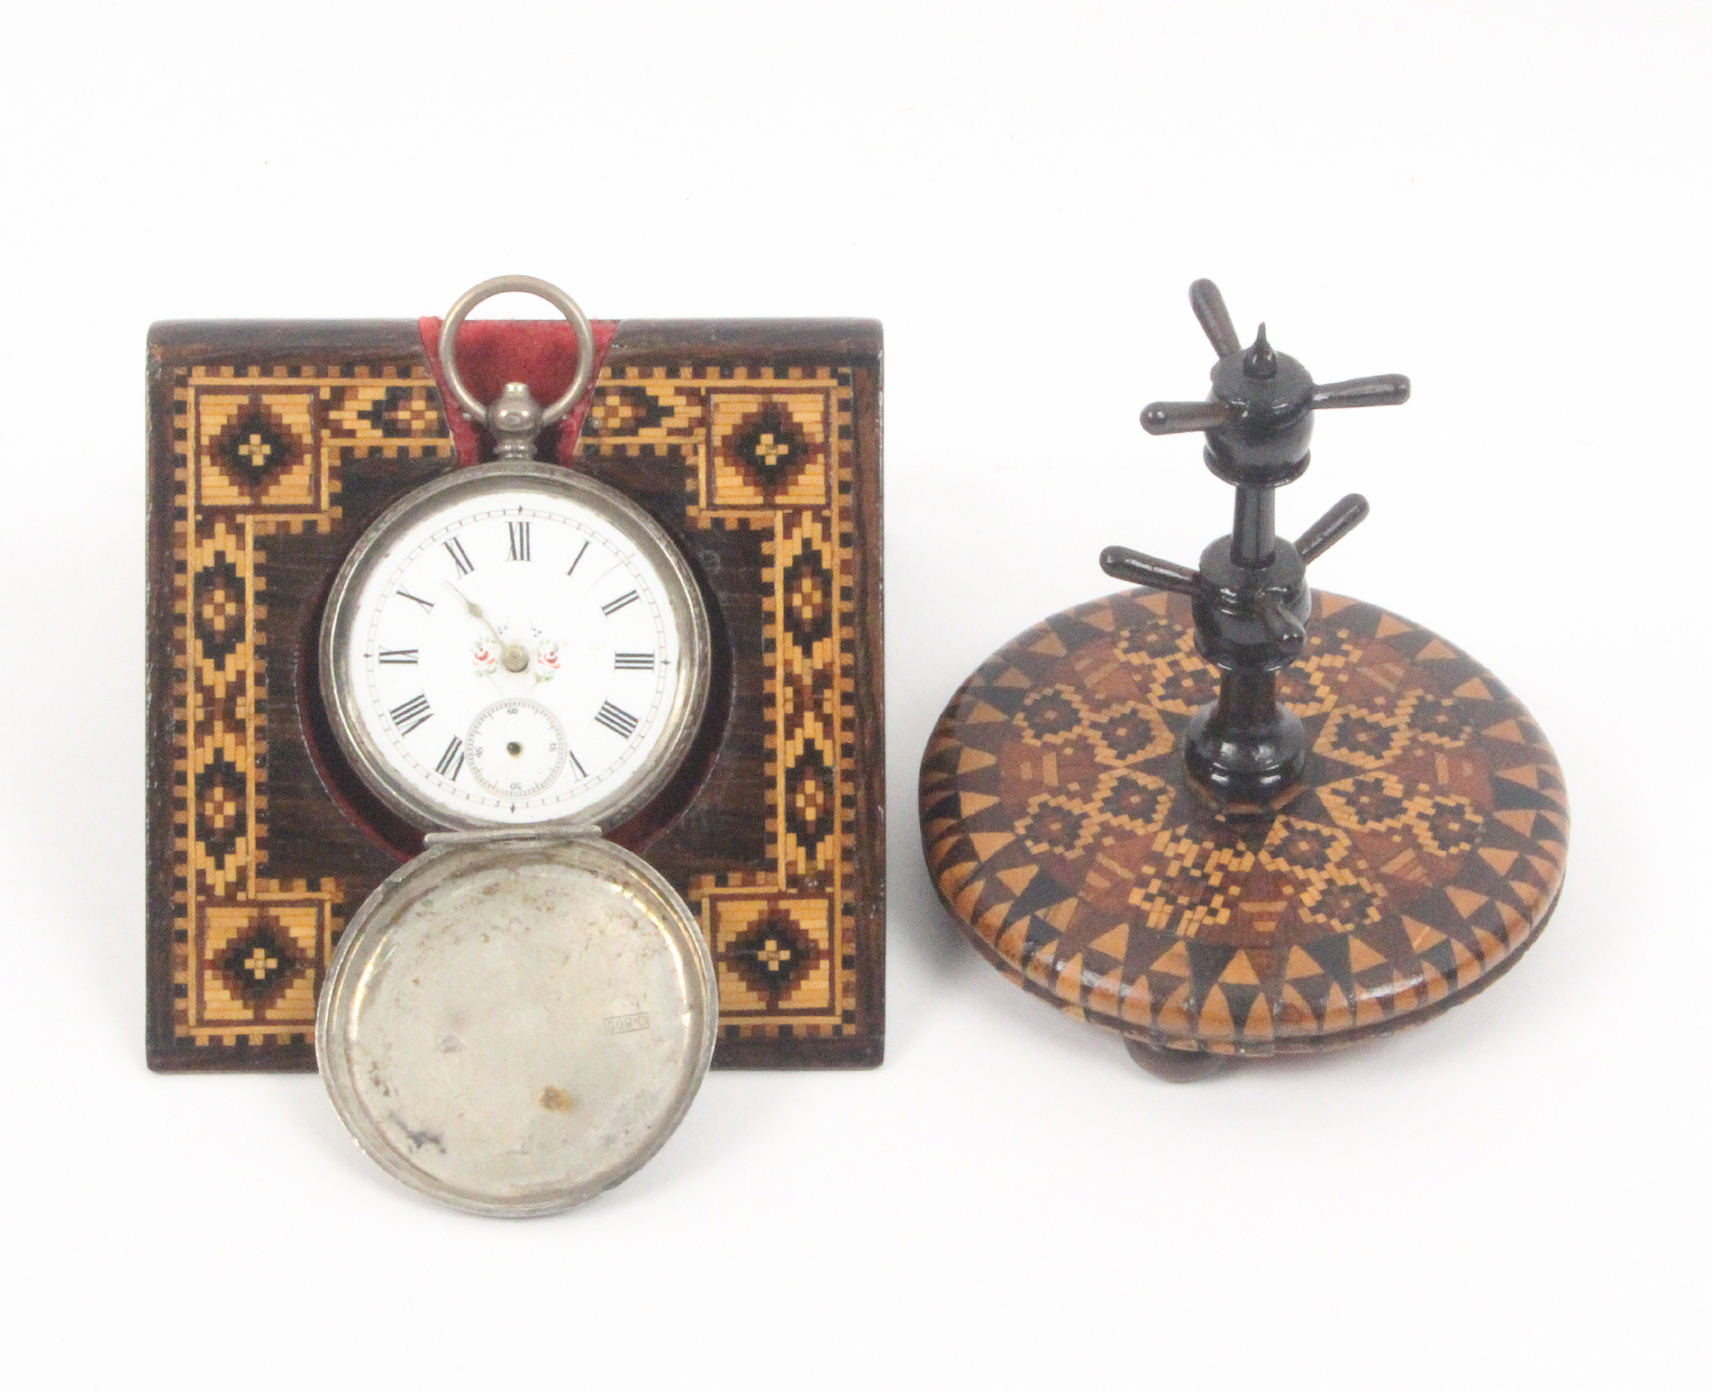 Lot 38 - A Tunbridge ware watch stand and a ring stand, the first of angled form with a border of geometric